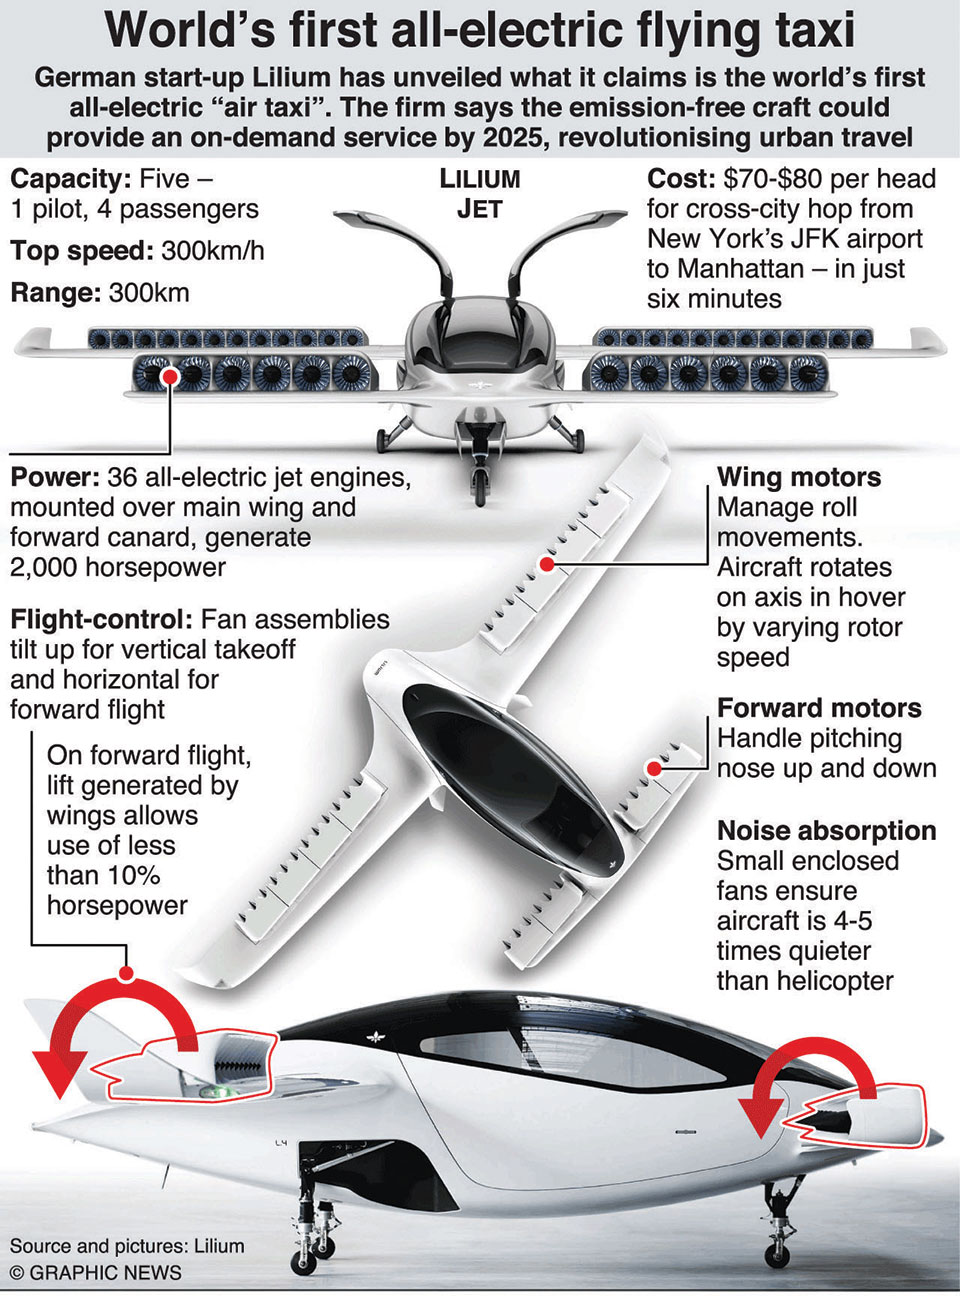 Infographics: World's first all-electric flying taxi takes off